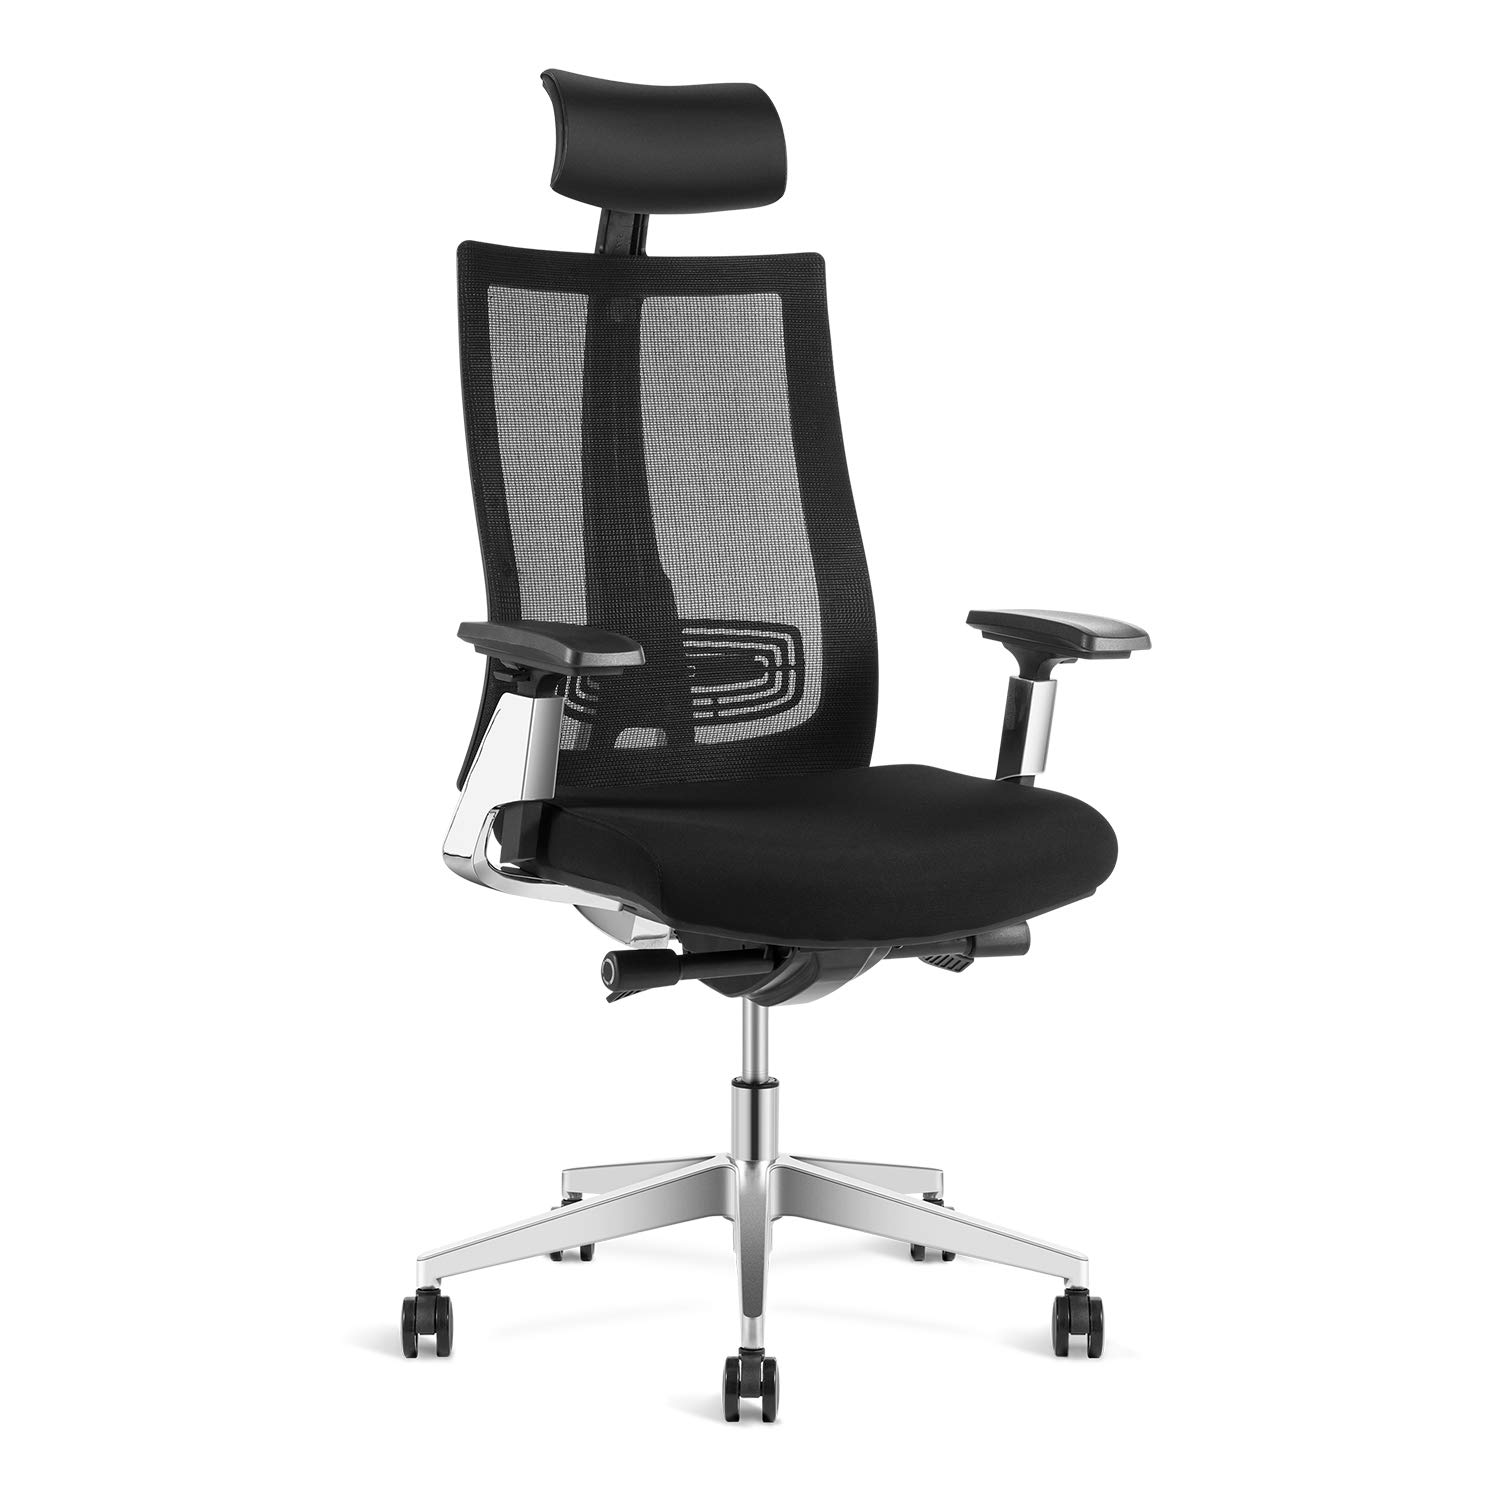 Ergonomic Adjustable Office Chair, High Back Desk Chair with Lumbar Support - Sliding Seat with 3D Armrest, Breathable Mesh, Aluminum Alloy Construction, Swivel Computer   Task Chair by Gabrylly